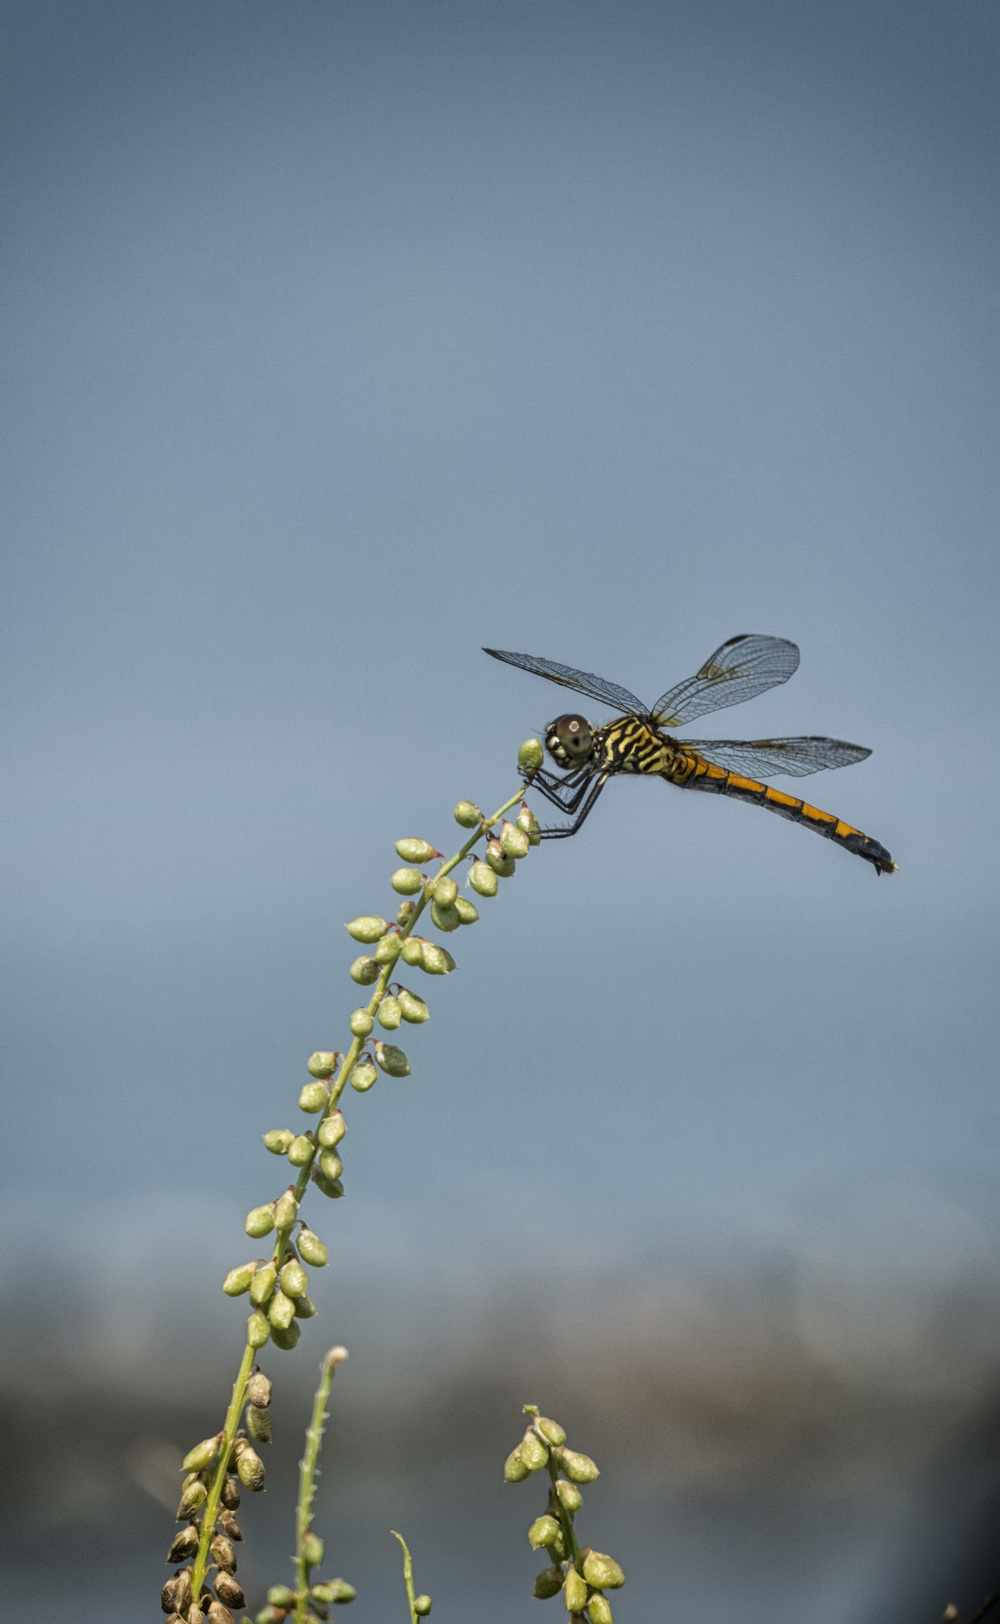 Dragonfly near Hooperville, Md.